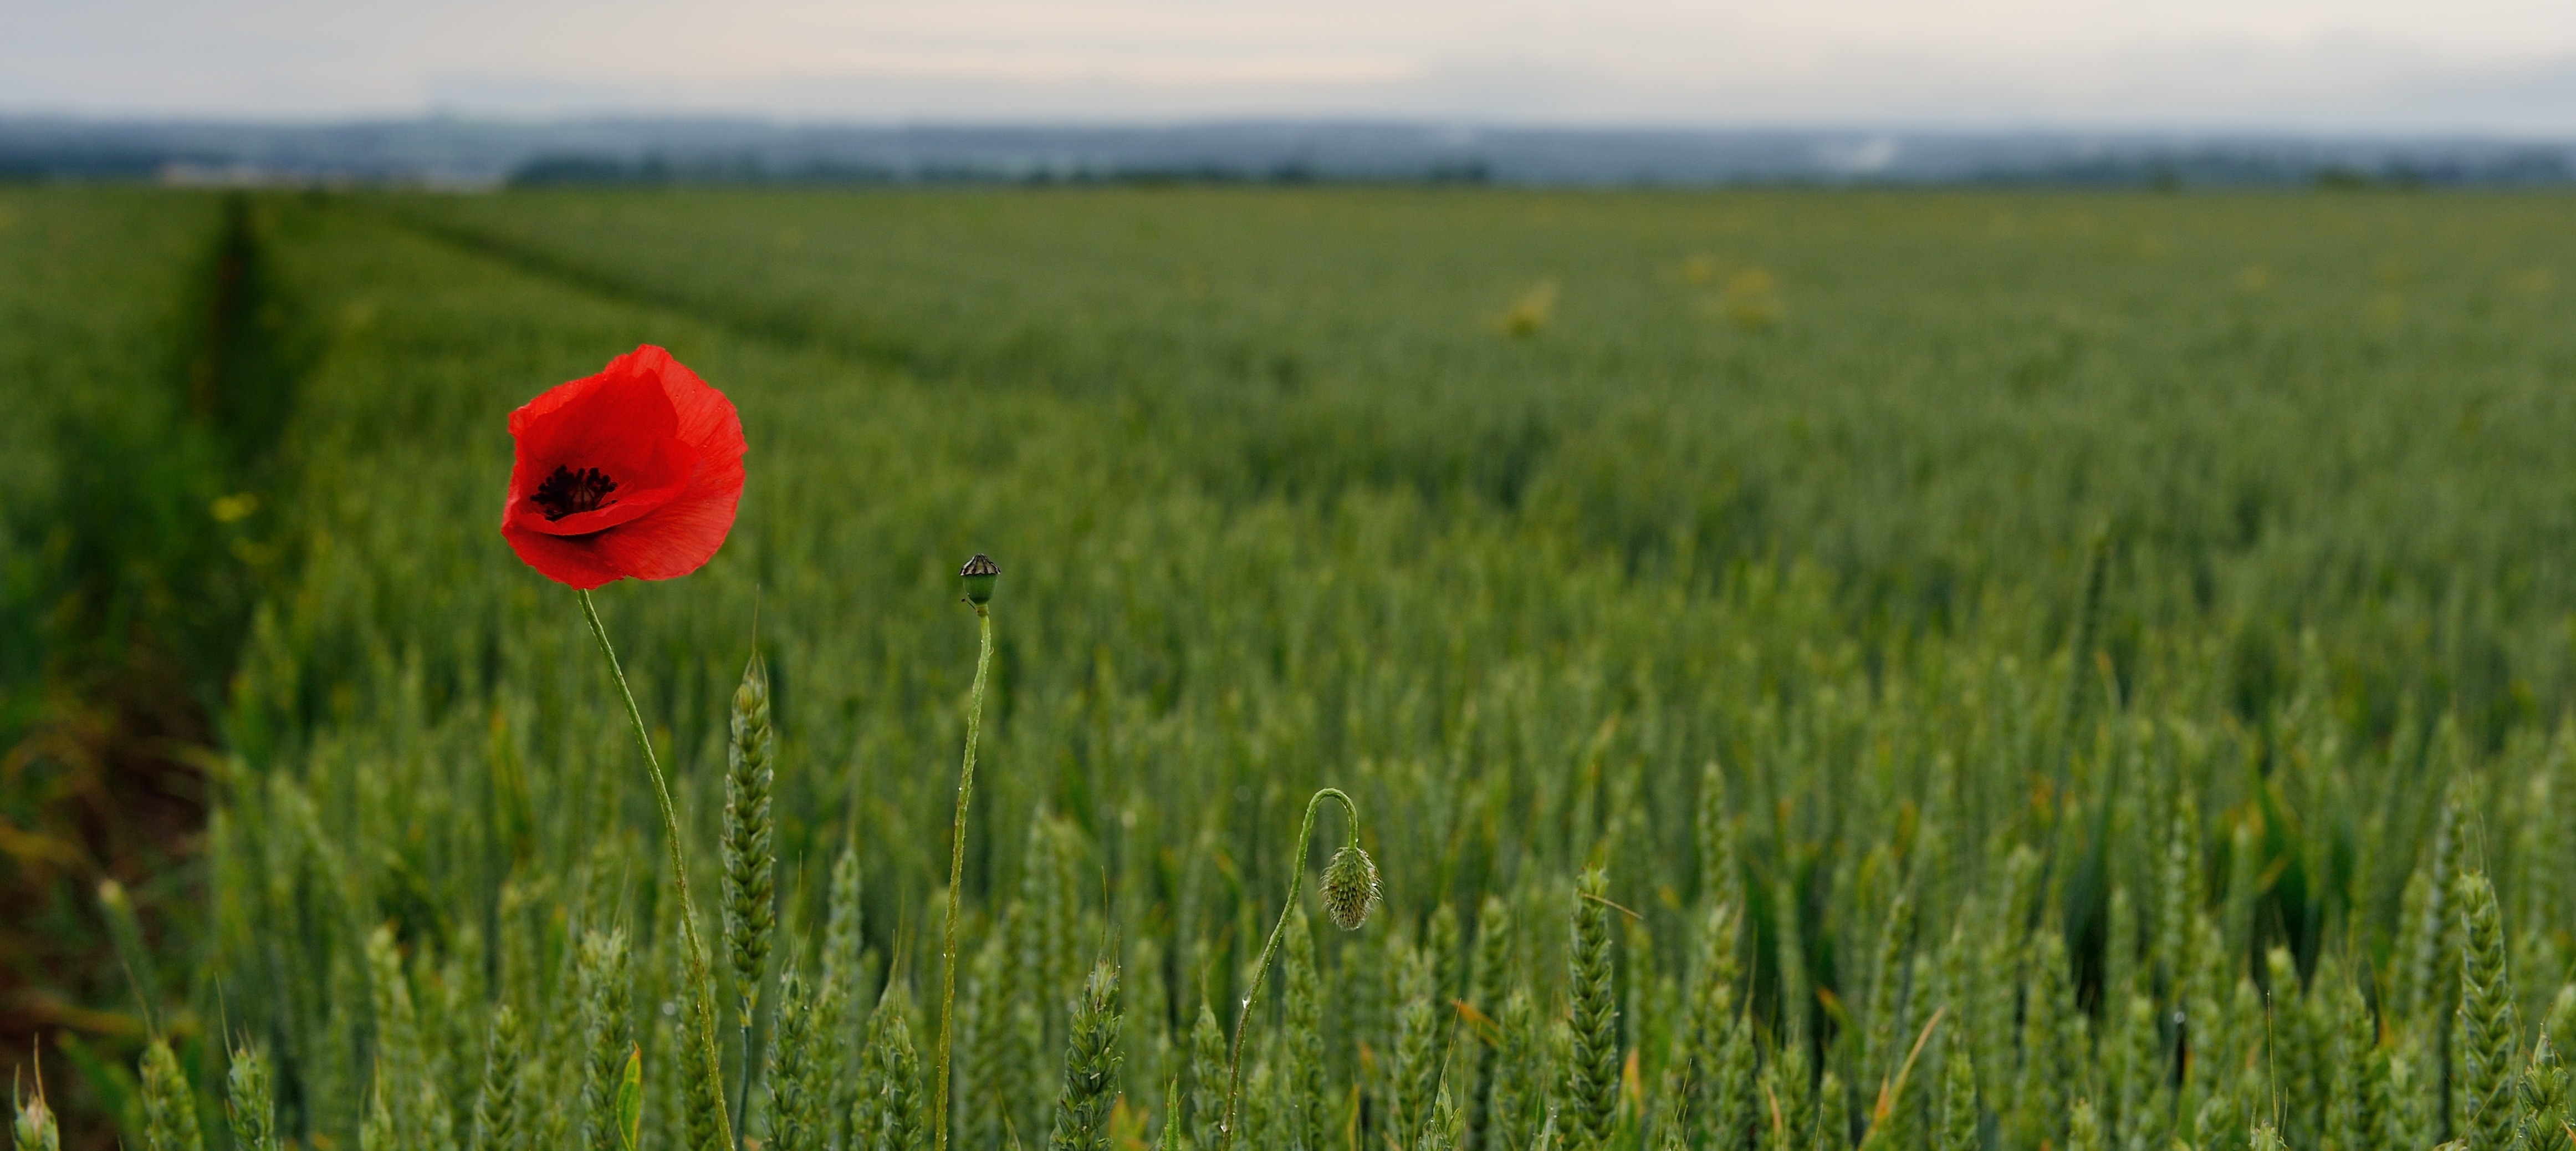 A poppy stands in the middle of a field beside the Bretteville-sur-Laize Canadian War Cemetary during the 70th Anniversary of D-Day and the Battle of Normandy ceremony at Bretteville-sur-Laize, France, on June 7, 2014.  Photo: MCpl Marc-Andre Gaudreault, Canadian Forces Combat Camera